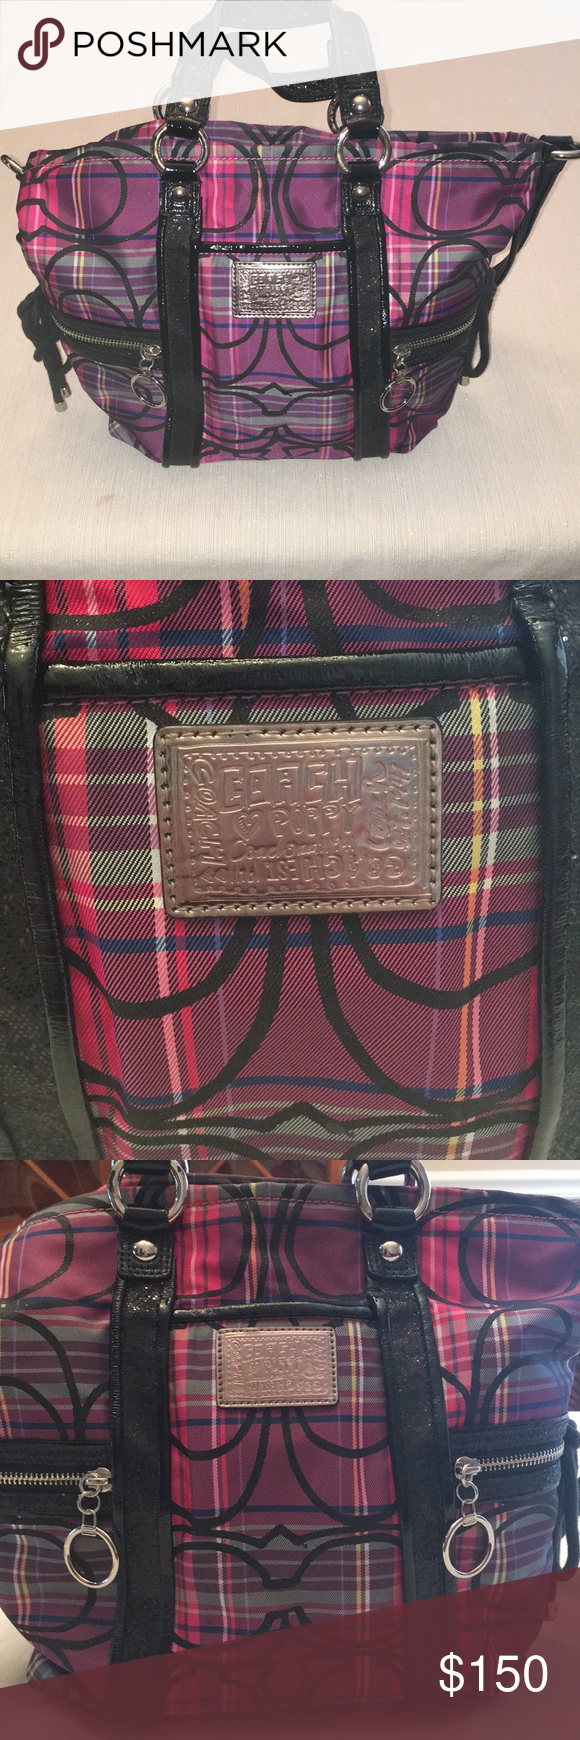 bfbb0bc7a3f Coach Poppy purple and pink plaid purse Coach Poppy purple and pink plaid  purse! Super cute plaid pattern with sparkly black hand and shoulder straps.